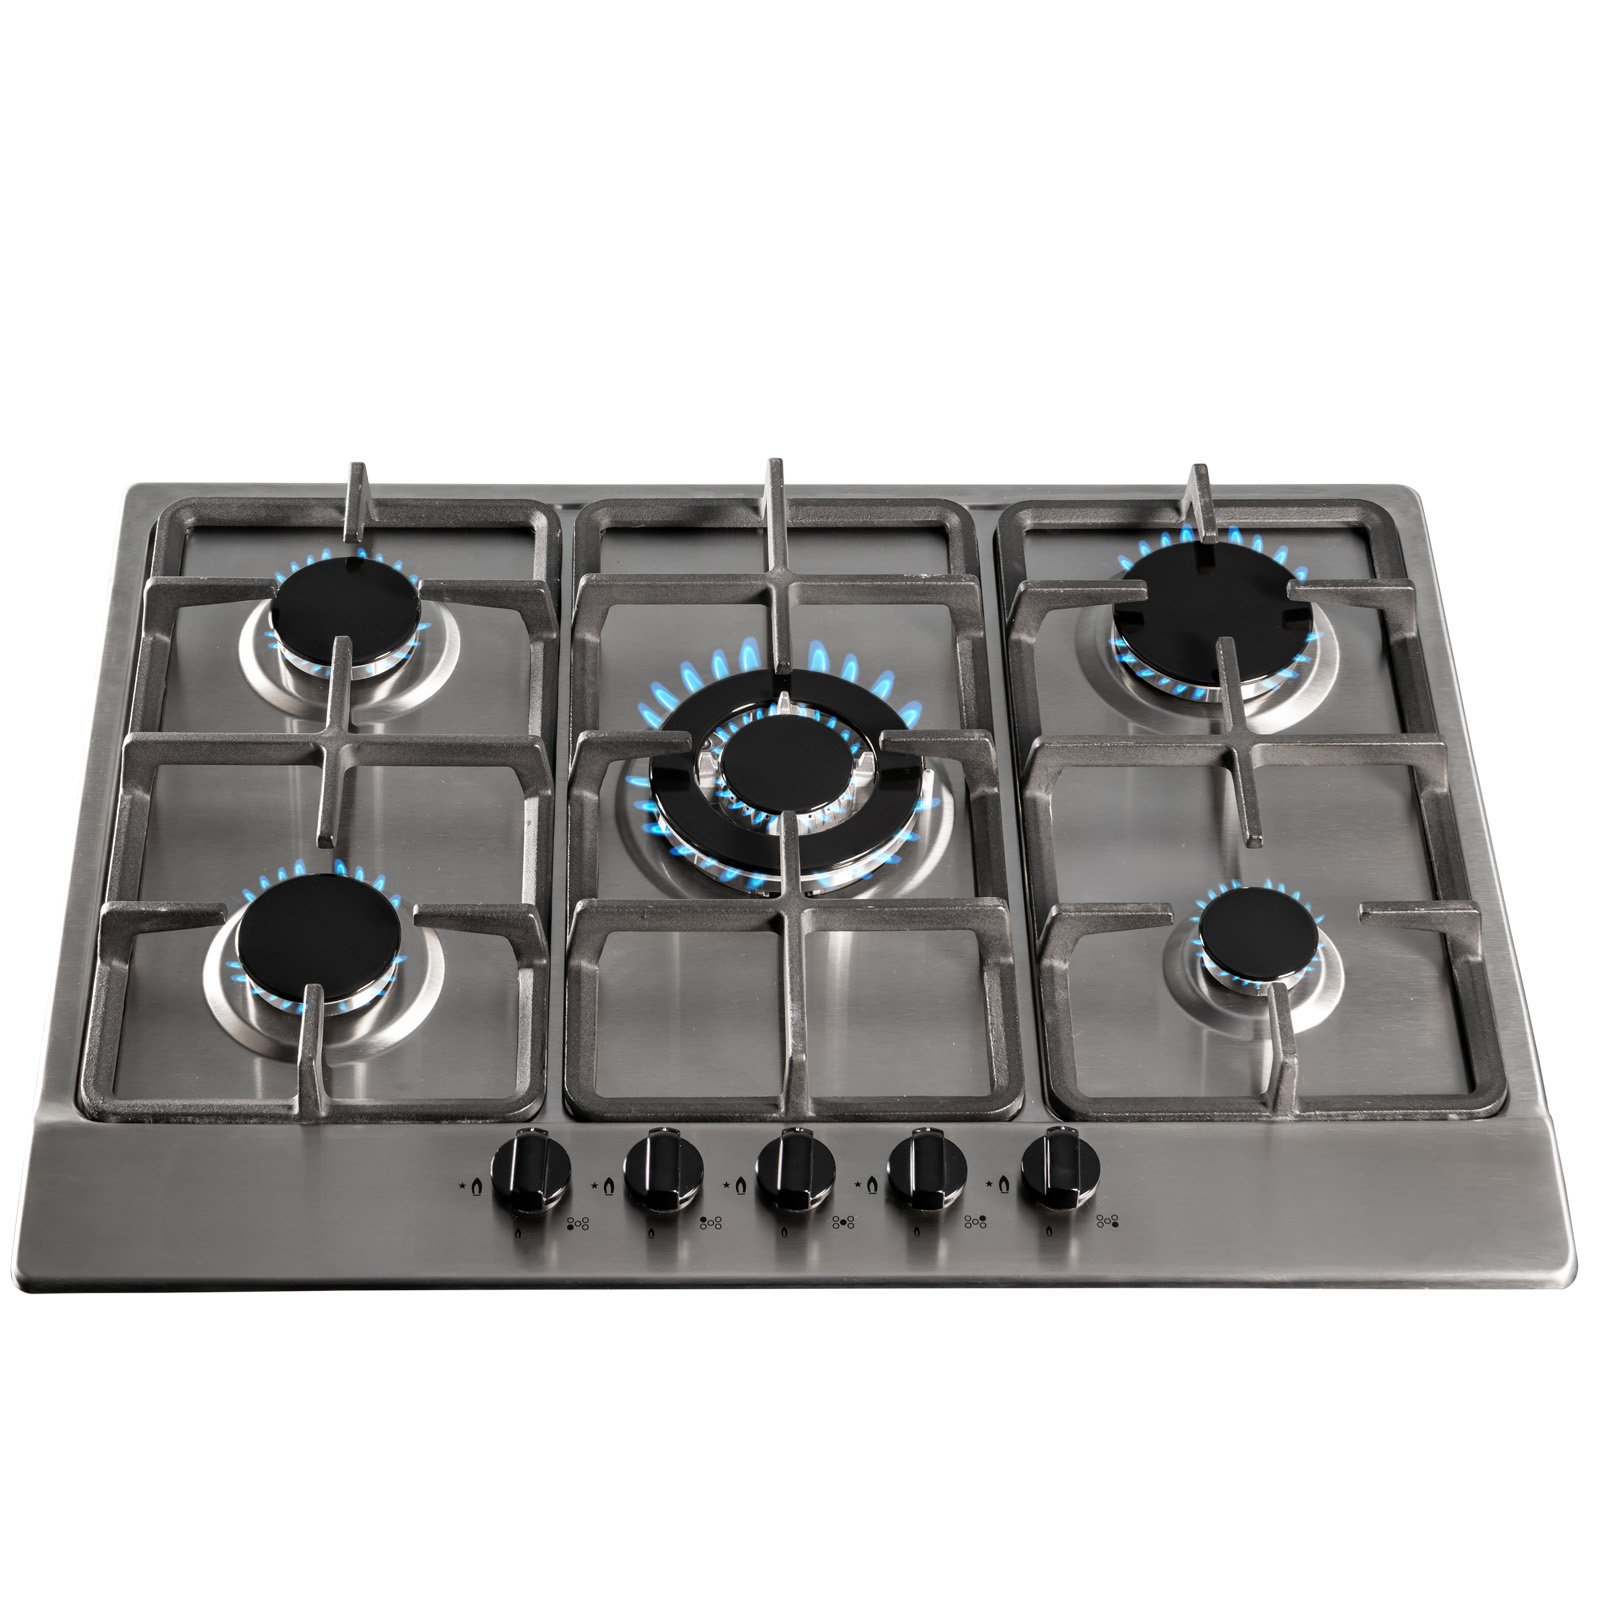 7146ad0d03c SIA SSG701SS 70cm Stainless Steel 5 Burner Gas Hob With Cast Iron Pan  Stands at Ship It Appliances